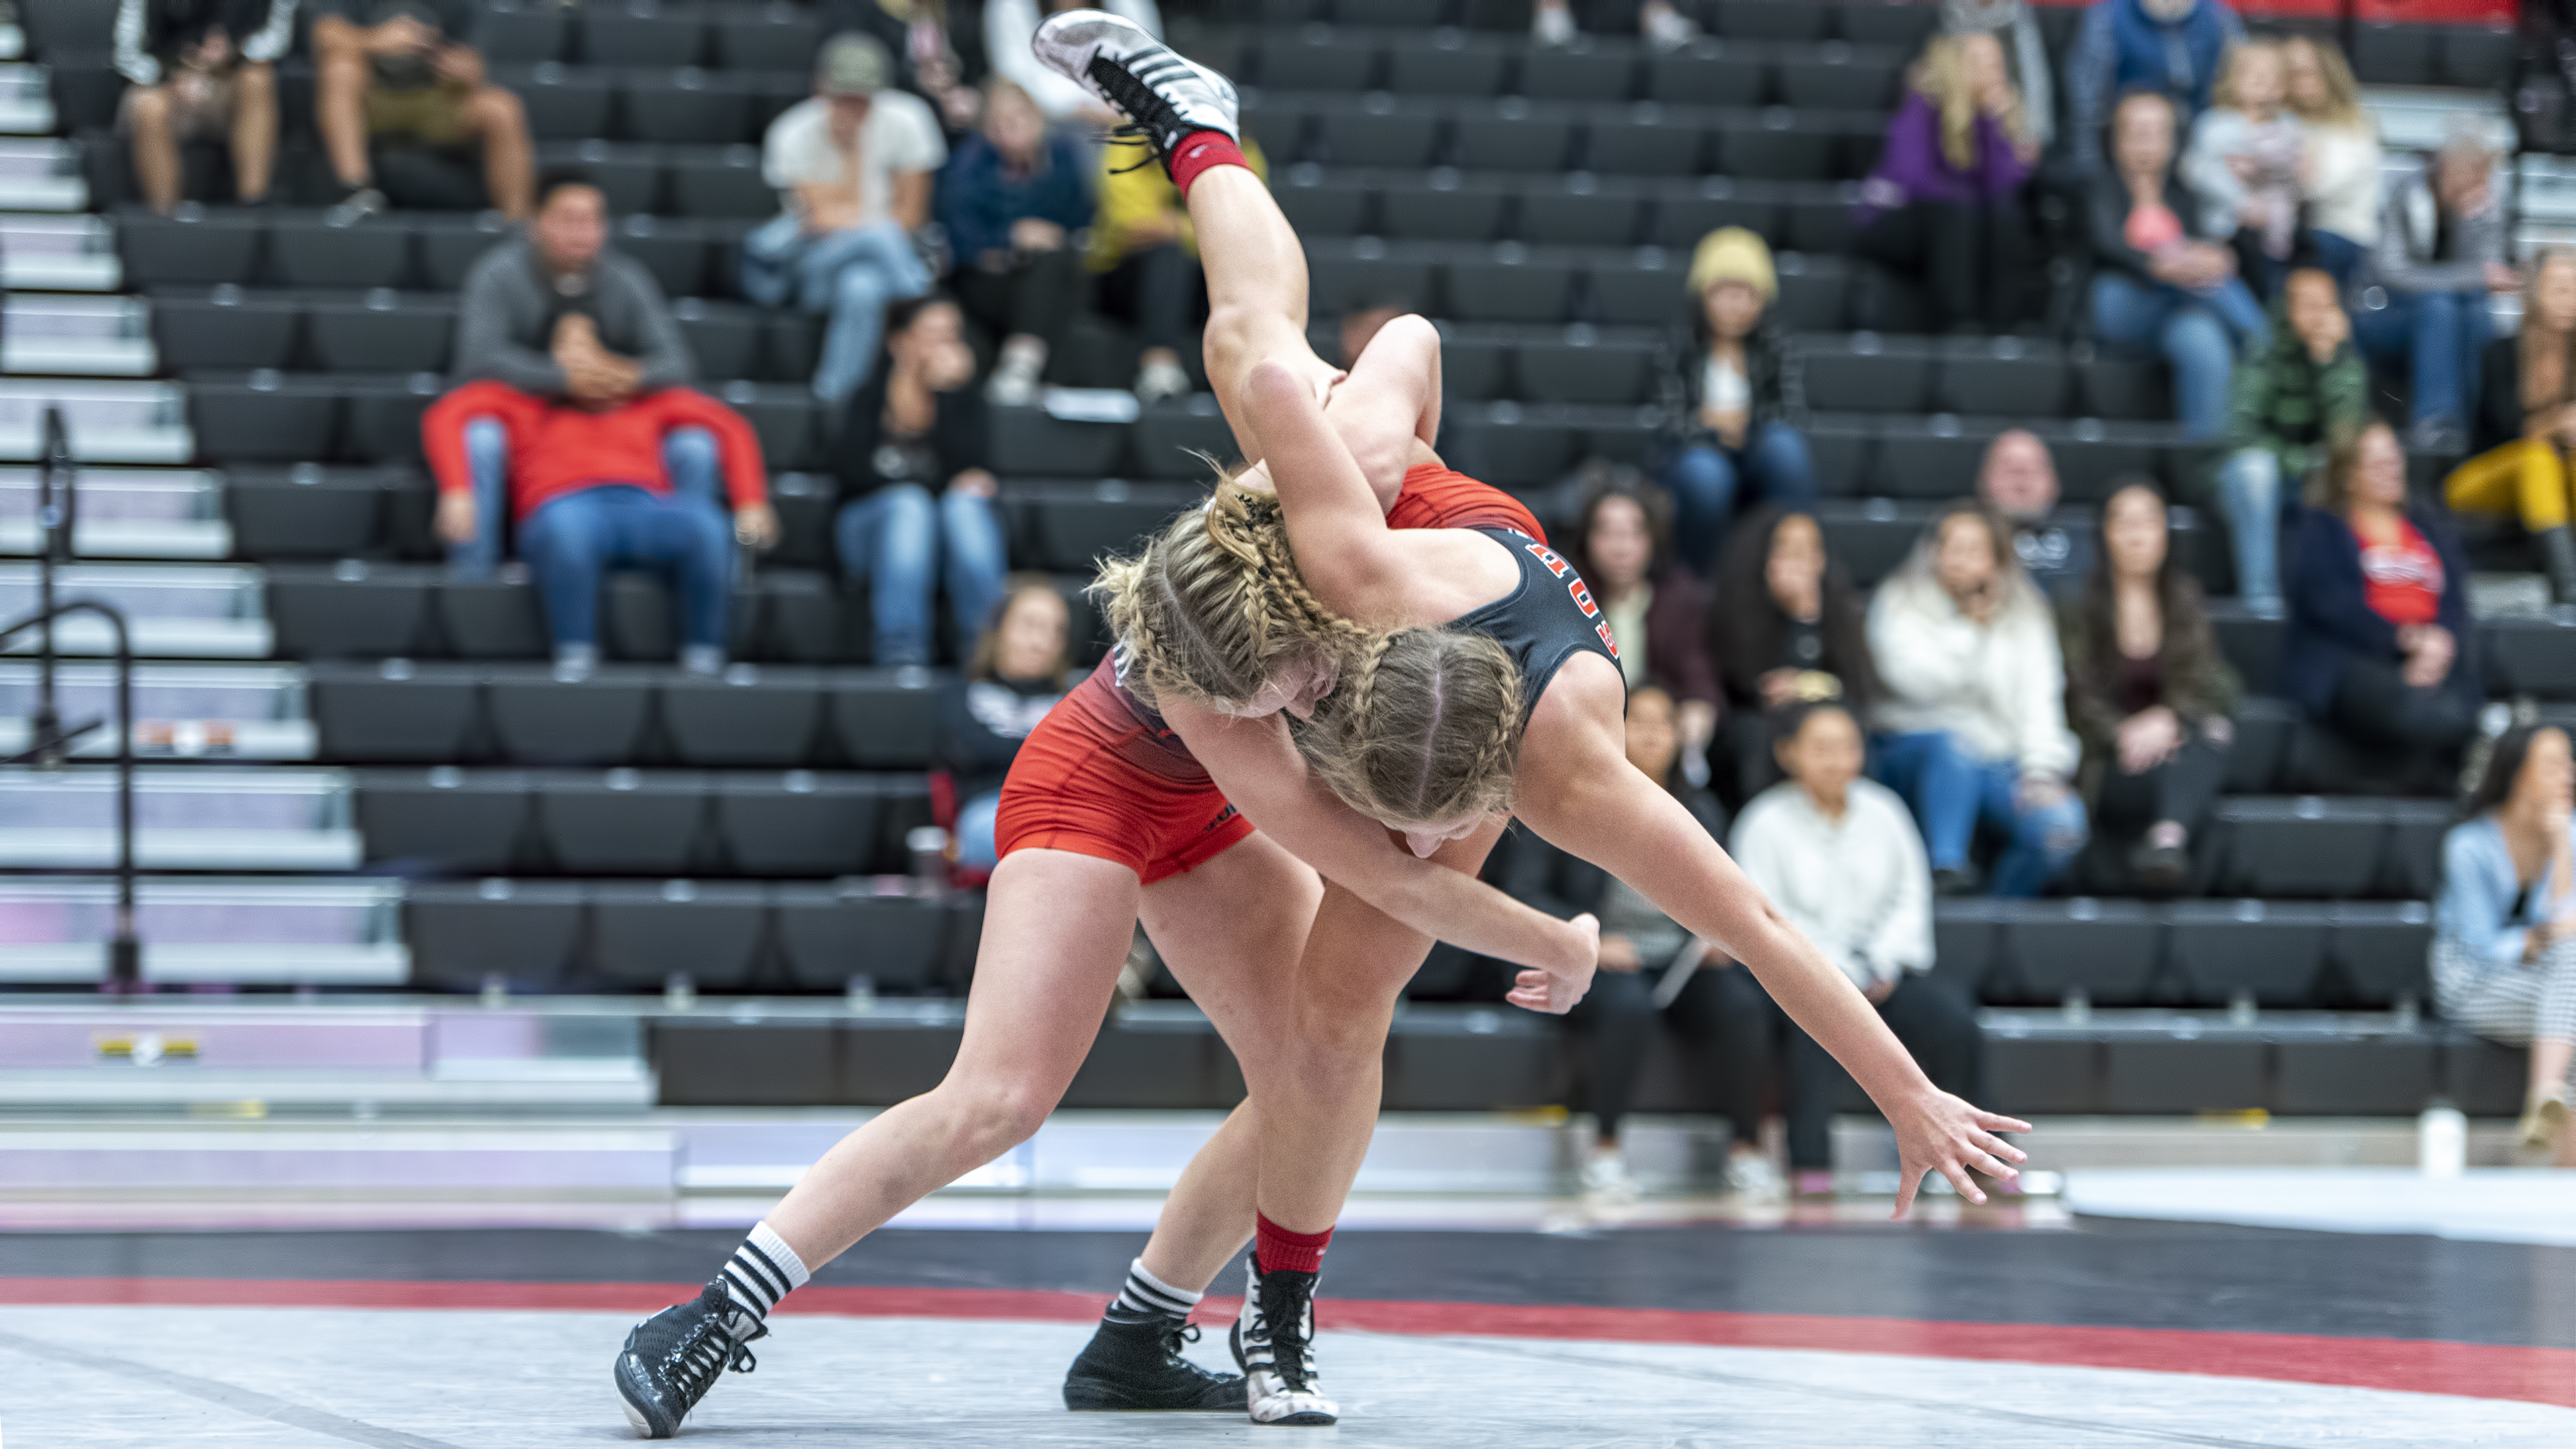 sou womens wrestling macie stewart karly scott